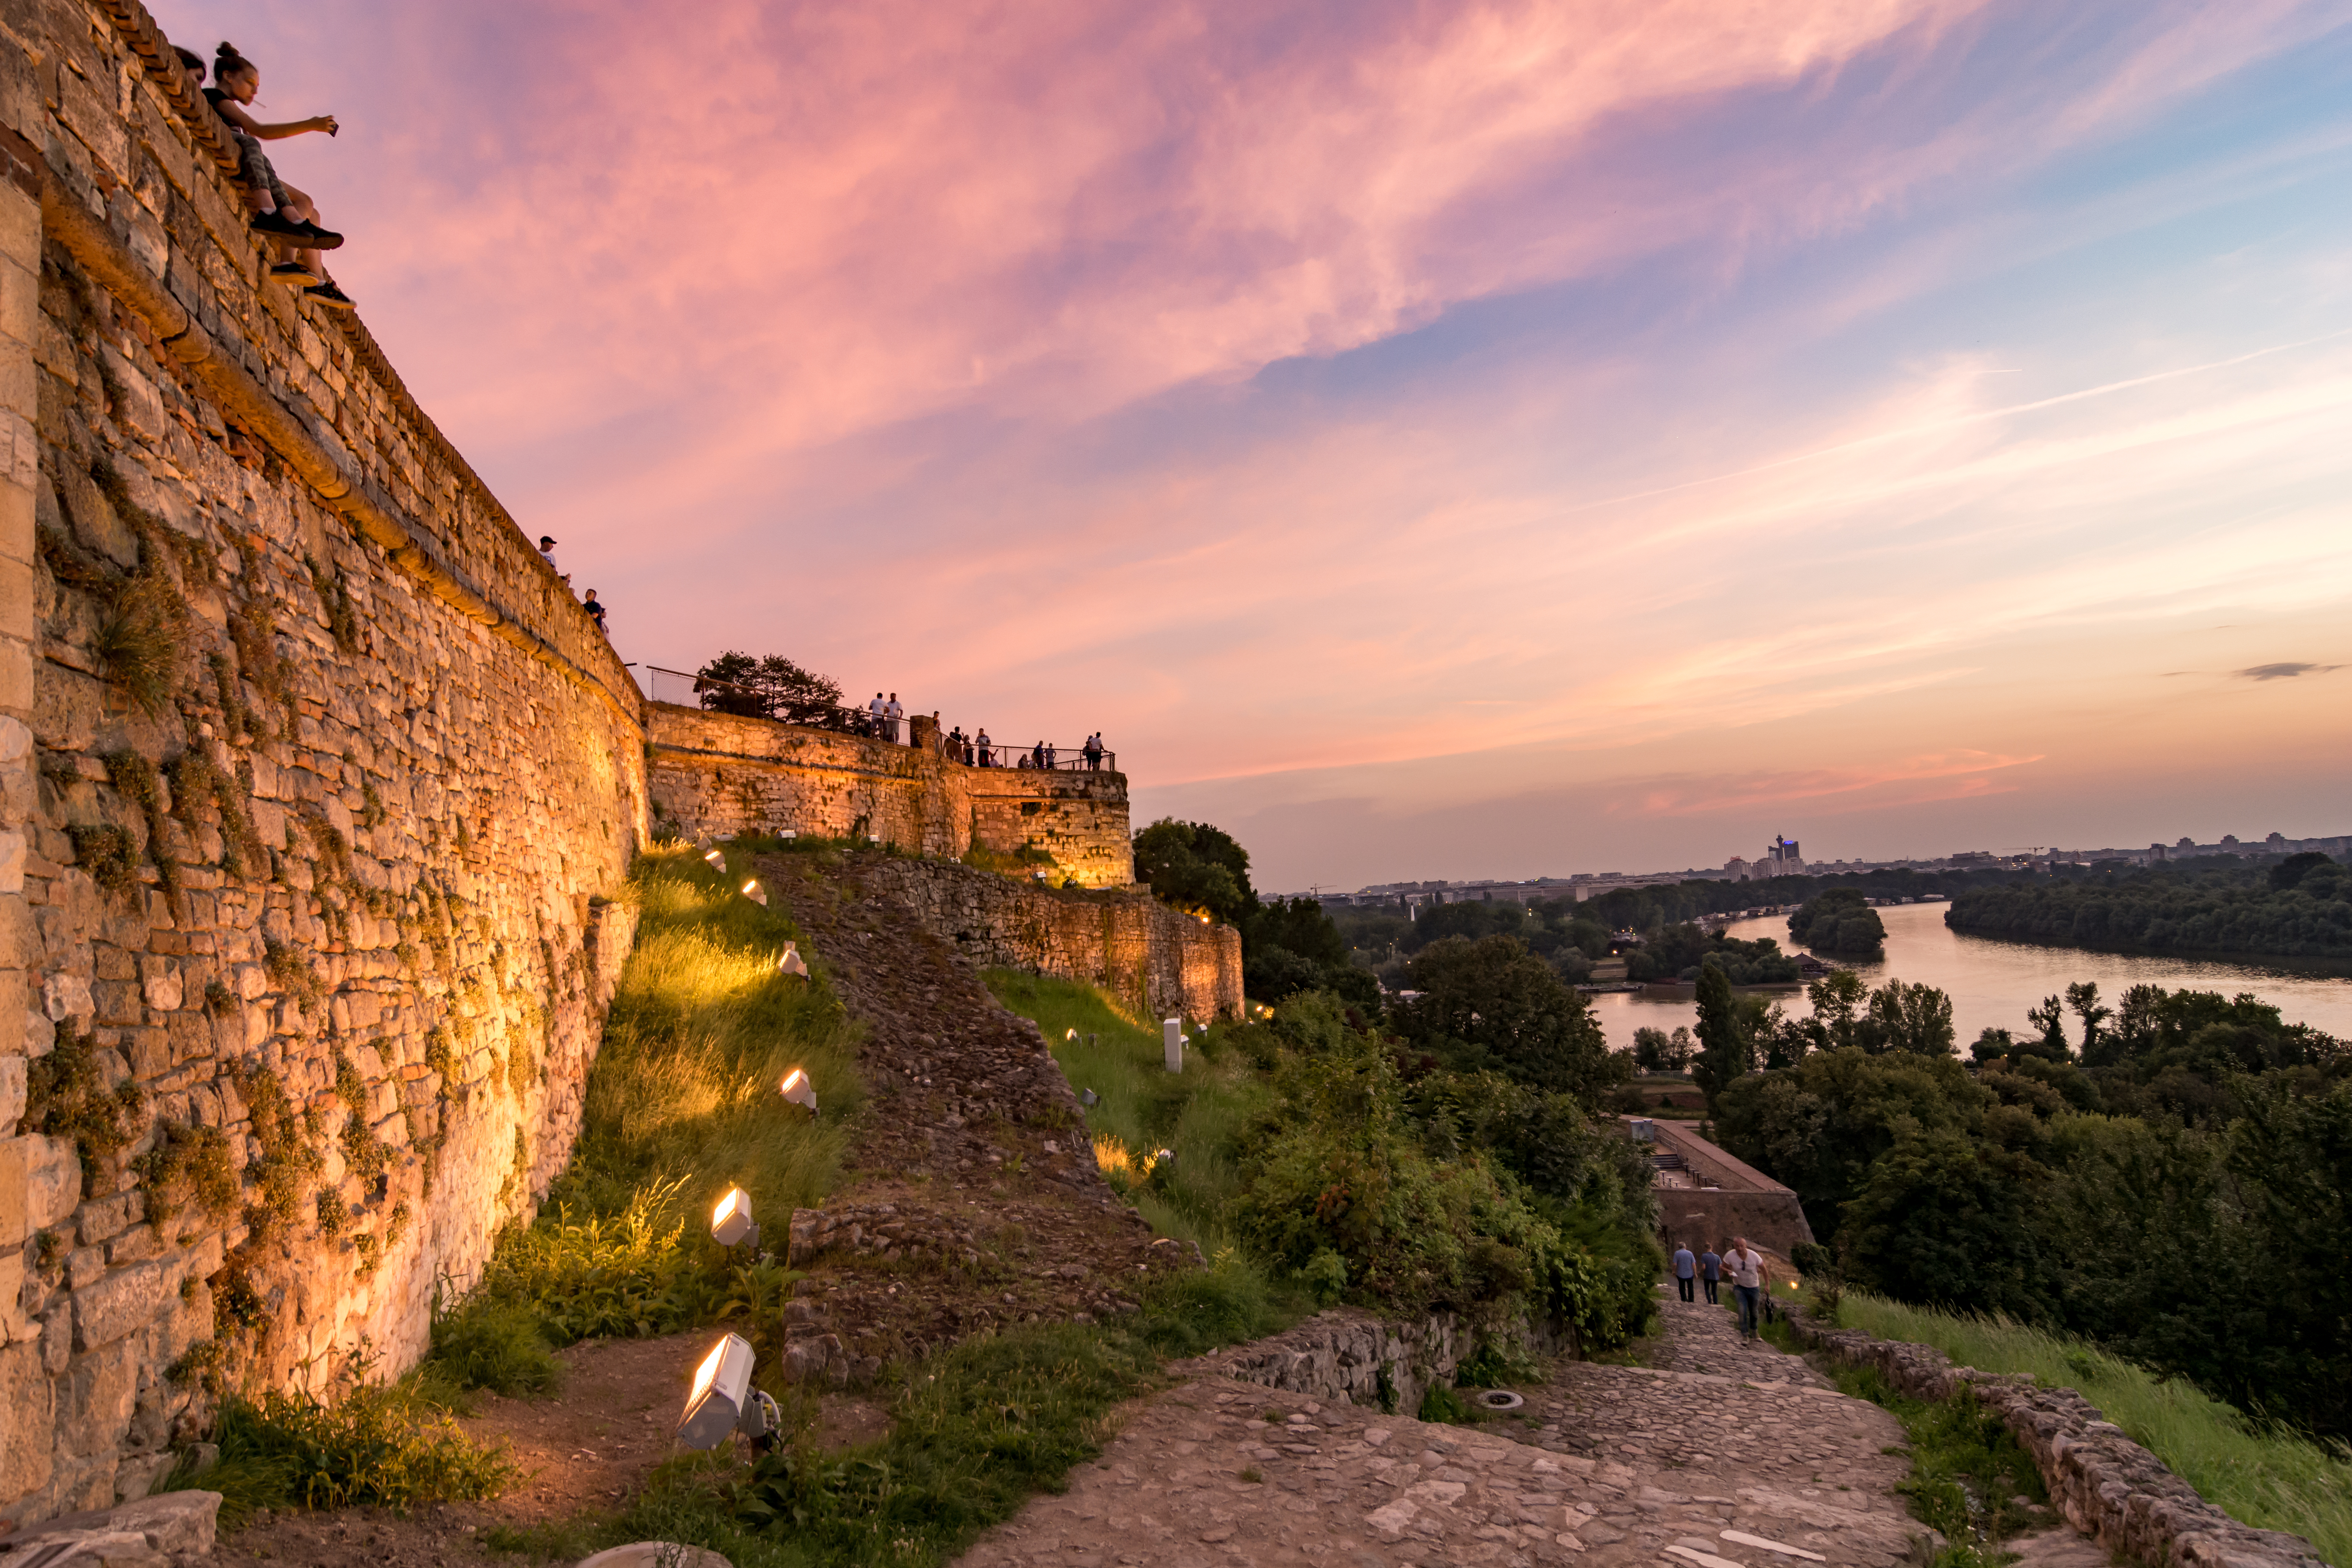 Golden hour over the river with ancient medieval fortress visible